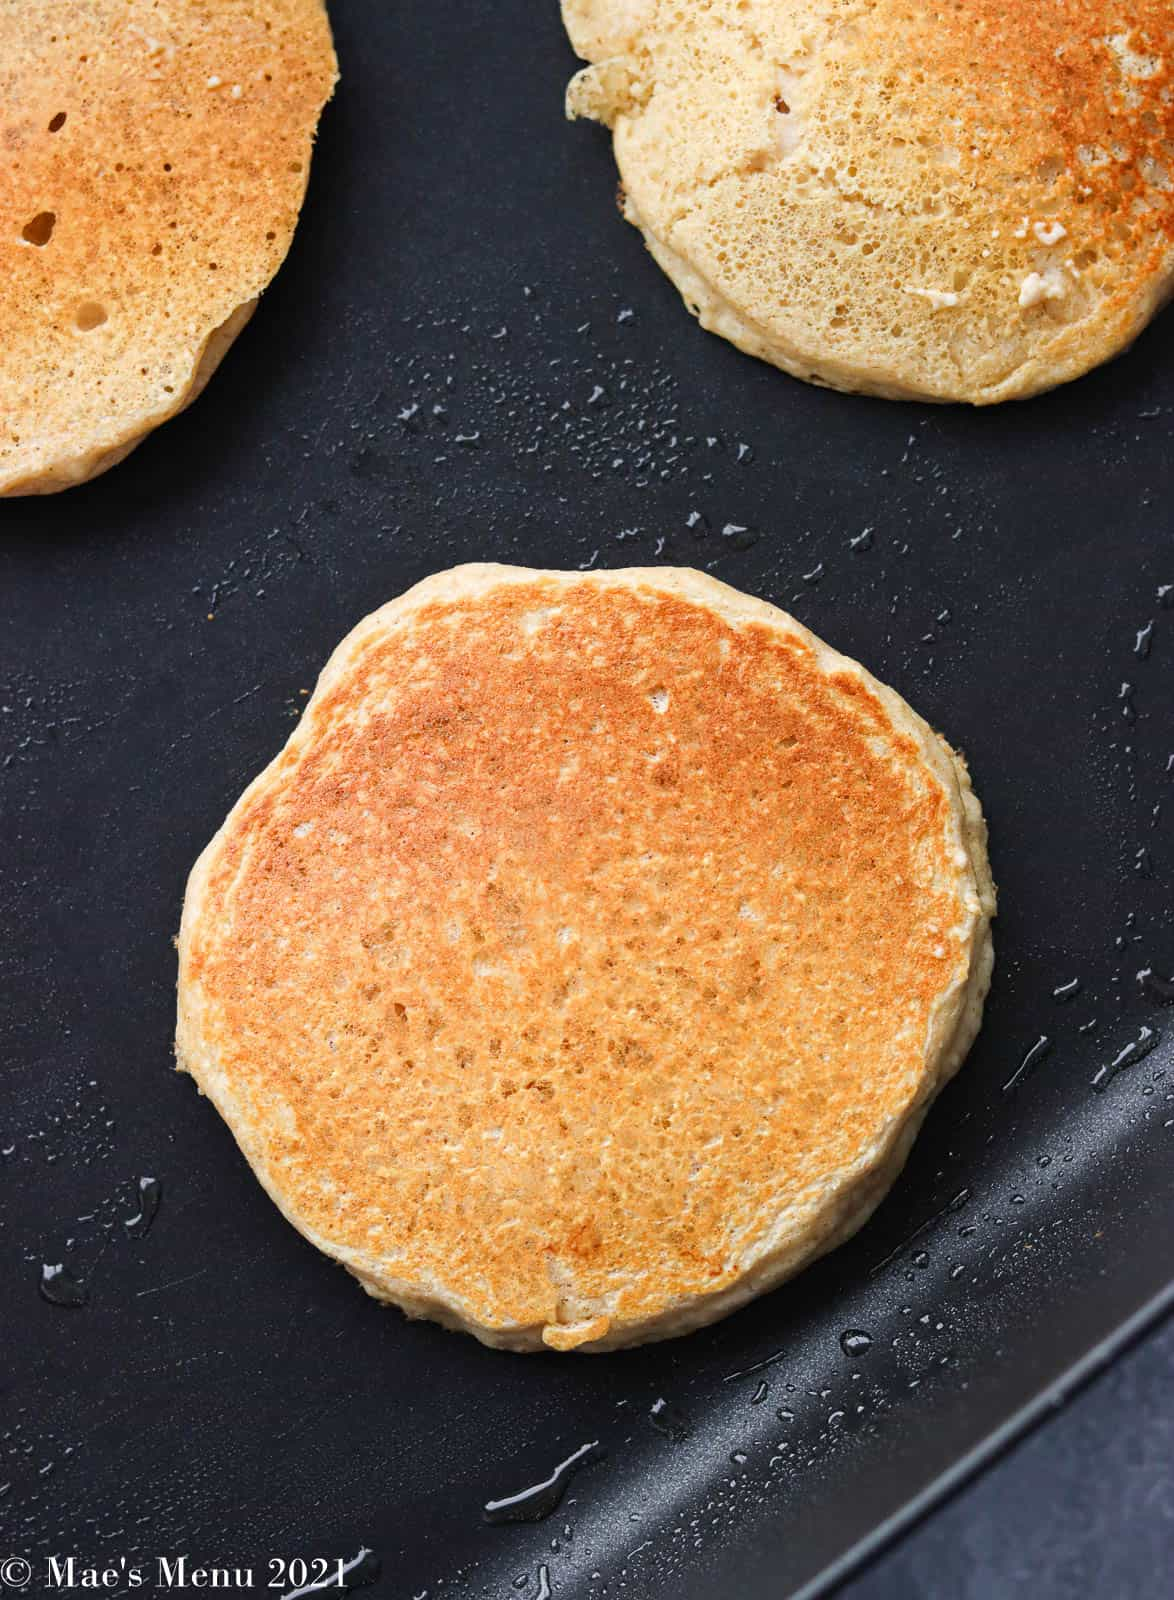 Cooked pancakes on a griddle